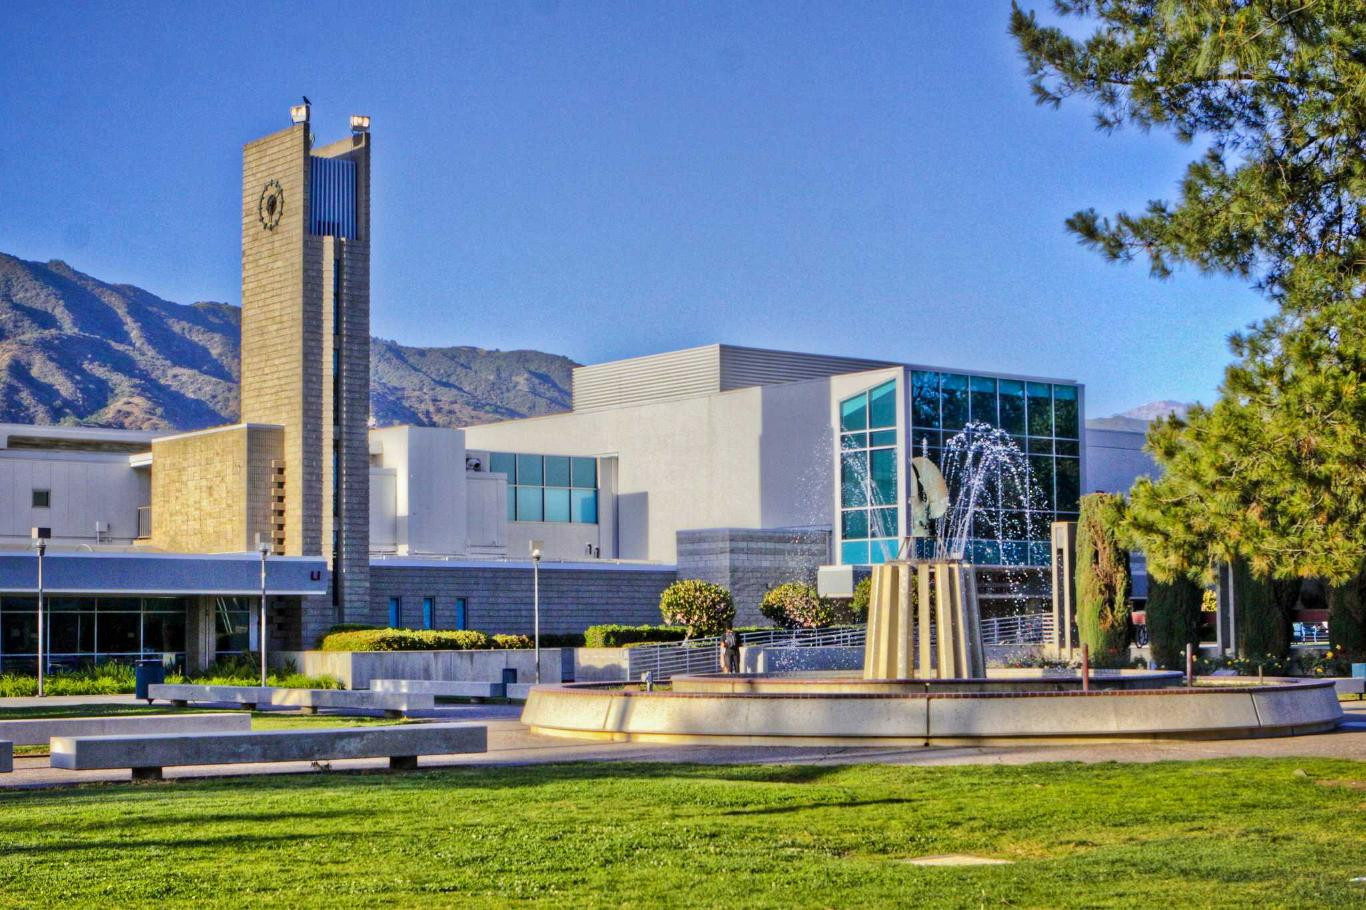 citrus college clock tower.jpg